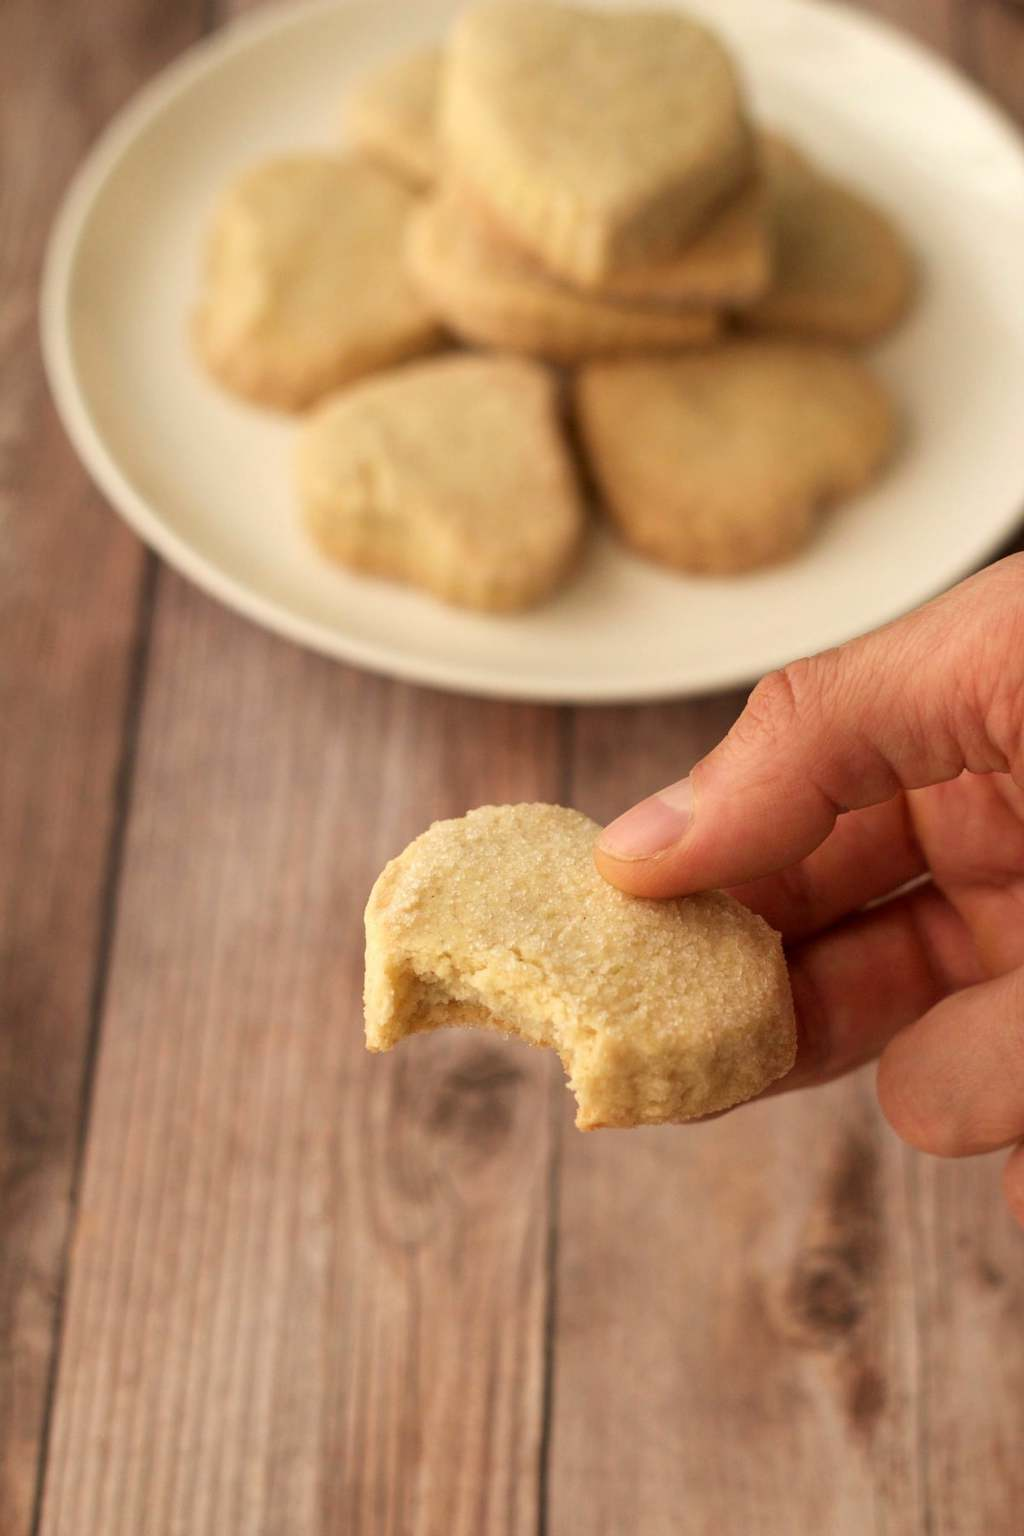 A vegan shortbread cookie with a bite taken out of it.